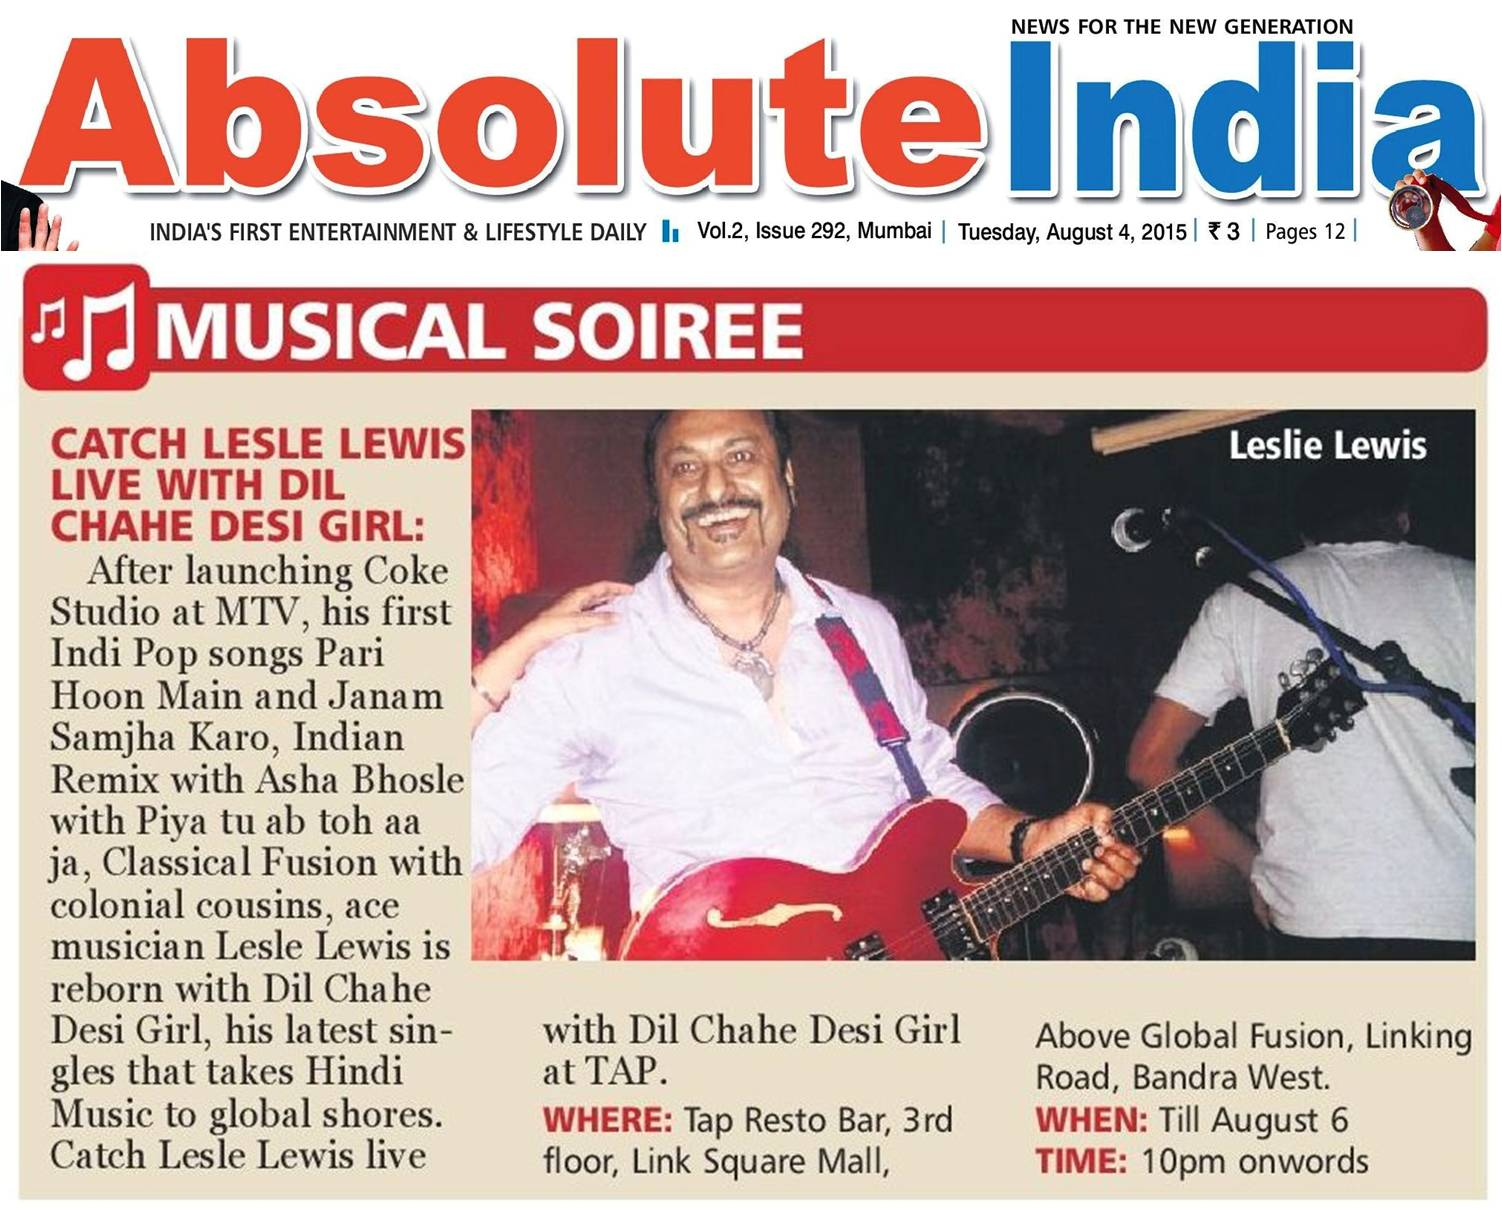 His Latest Singles That Takes Hindi Music To Global Ss Catch Lesle Lewis Live With Dil Chahe Desi At Tap Resto Bar Bandra West